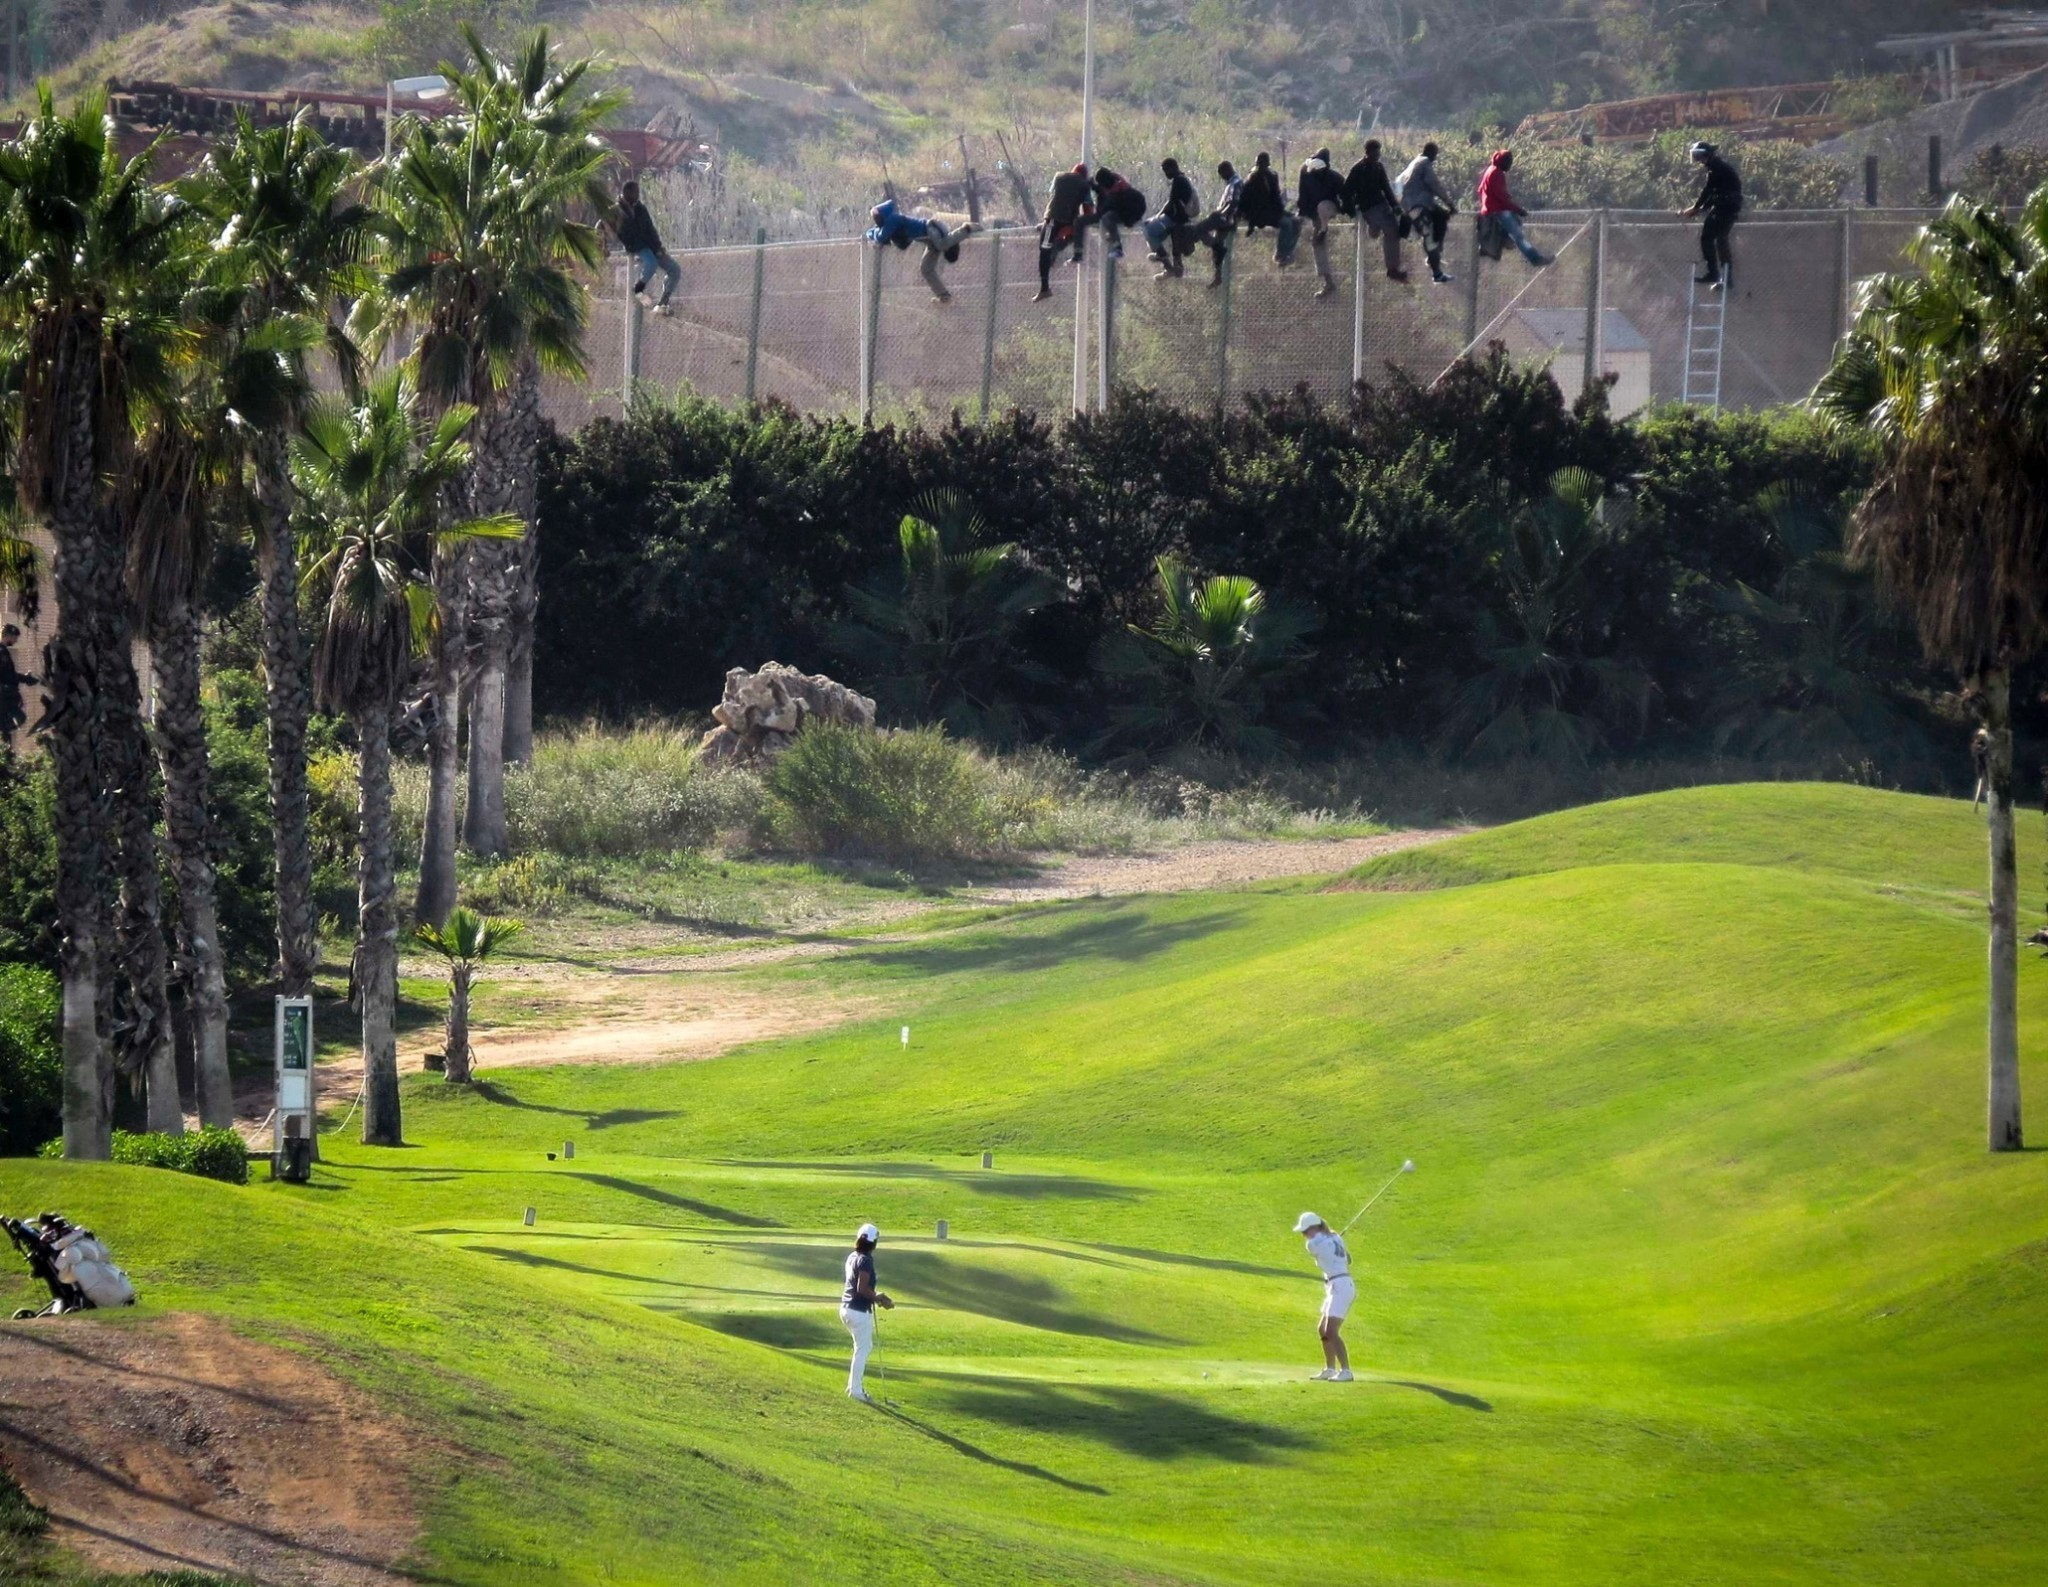 African migrants look down on white-clad golfers in viral photo